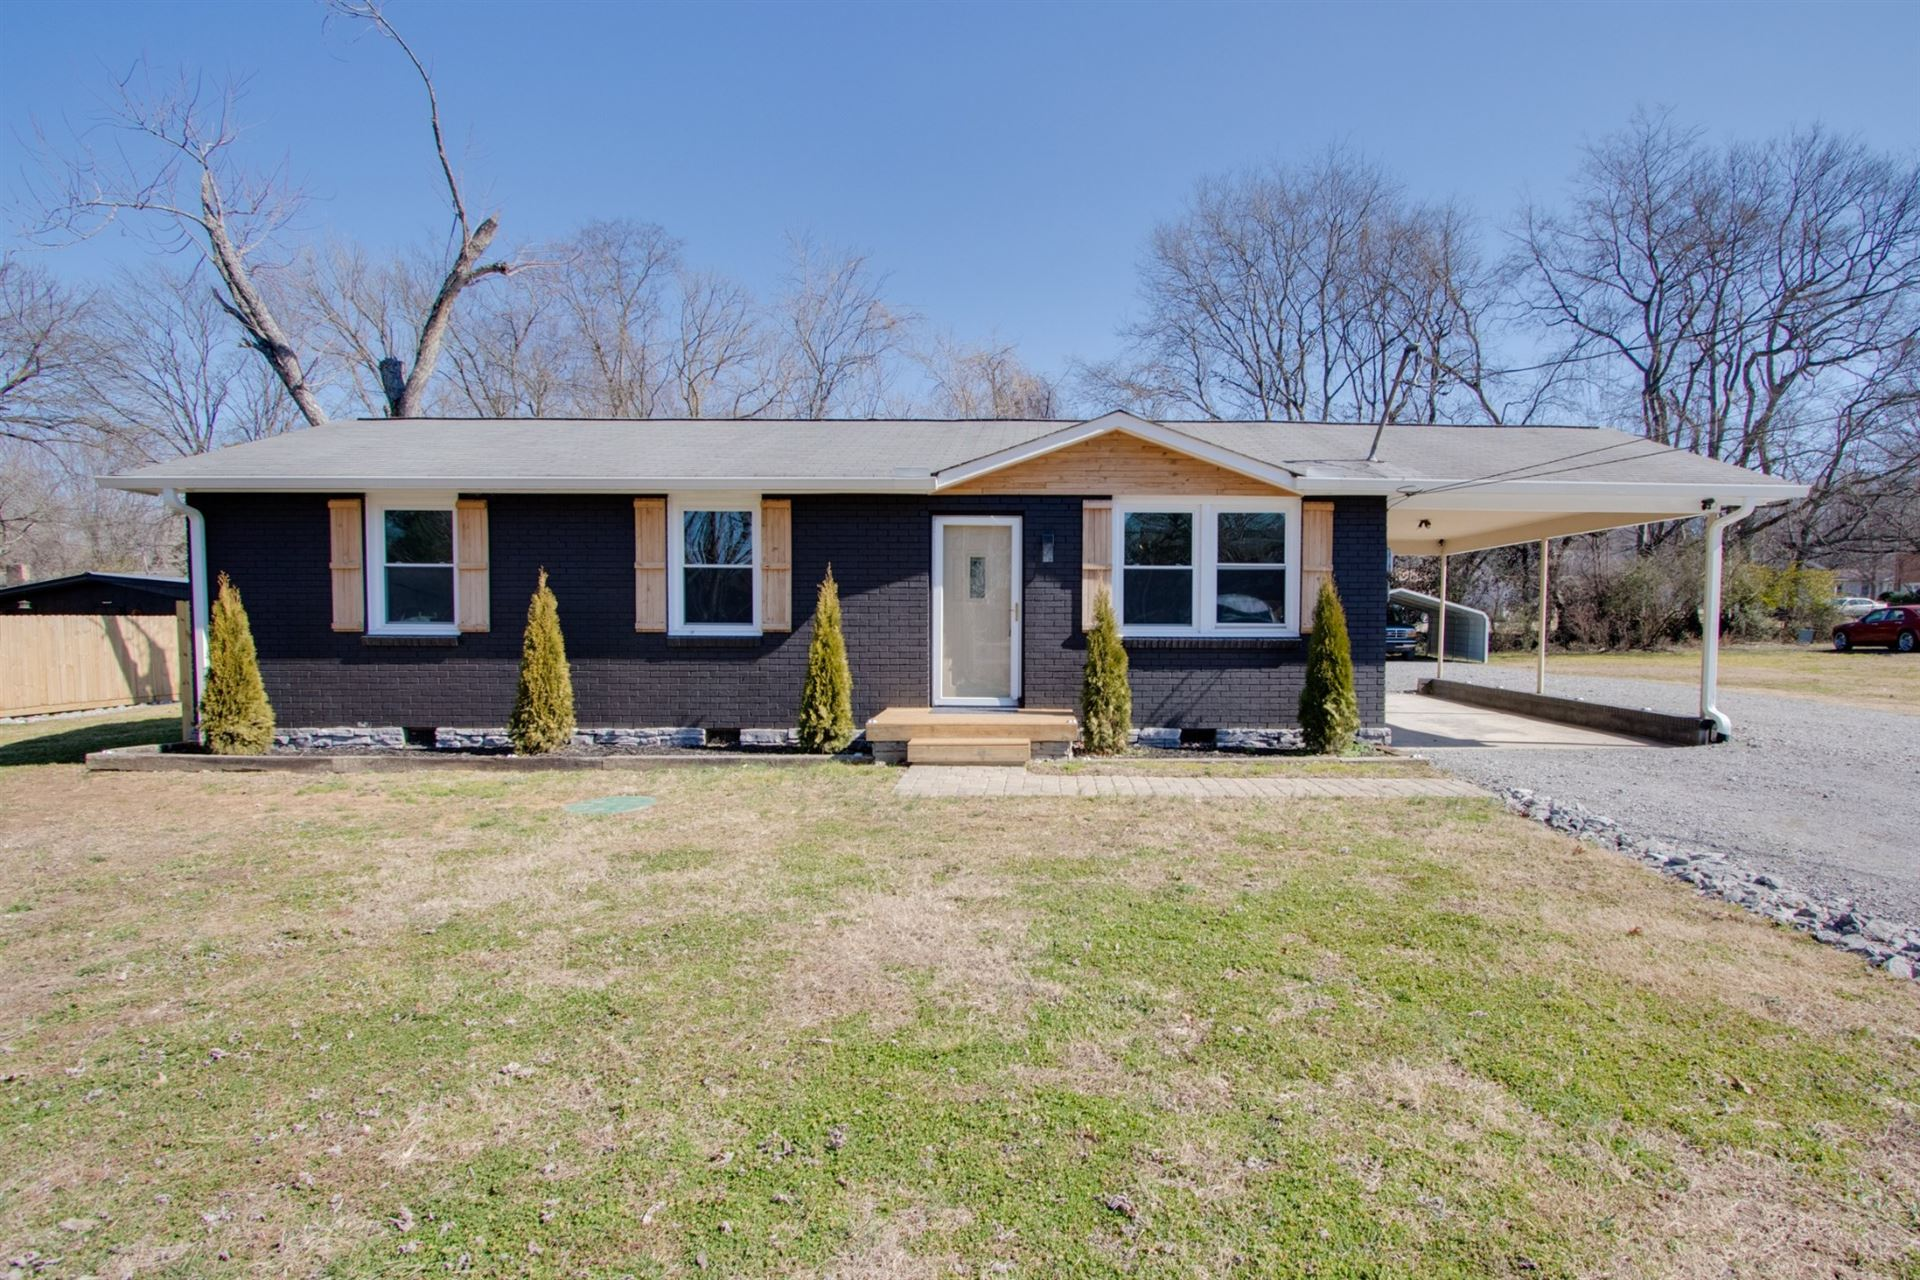 209 Grandview Dr, Old Hickory, TN 37138 - MLS#: 2231272